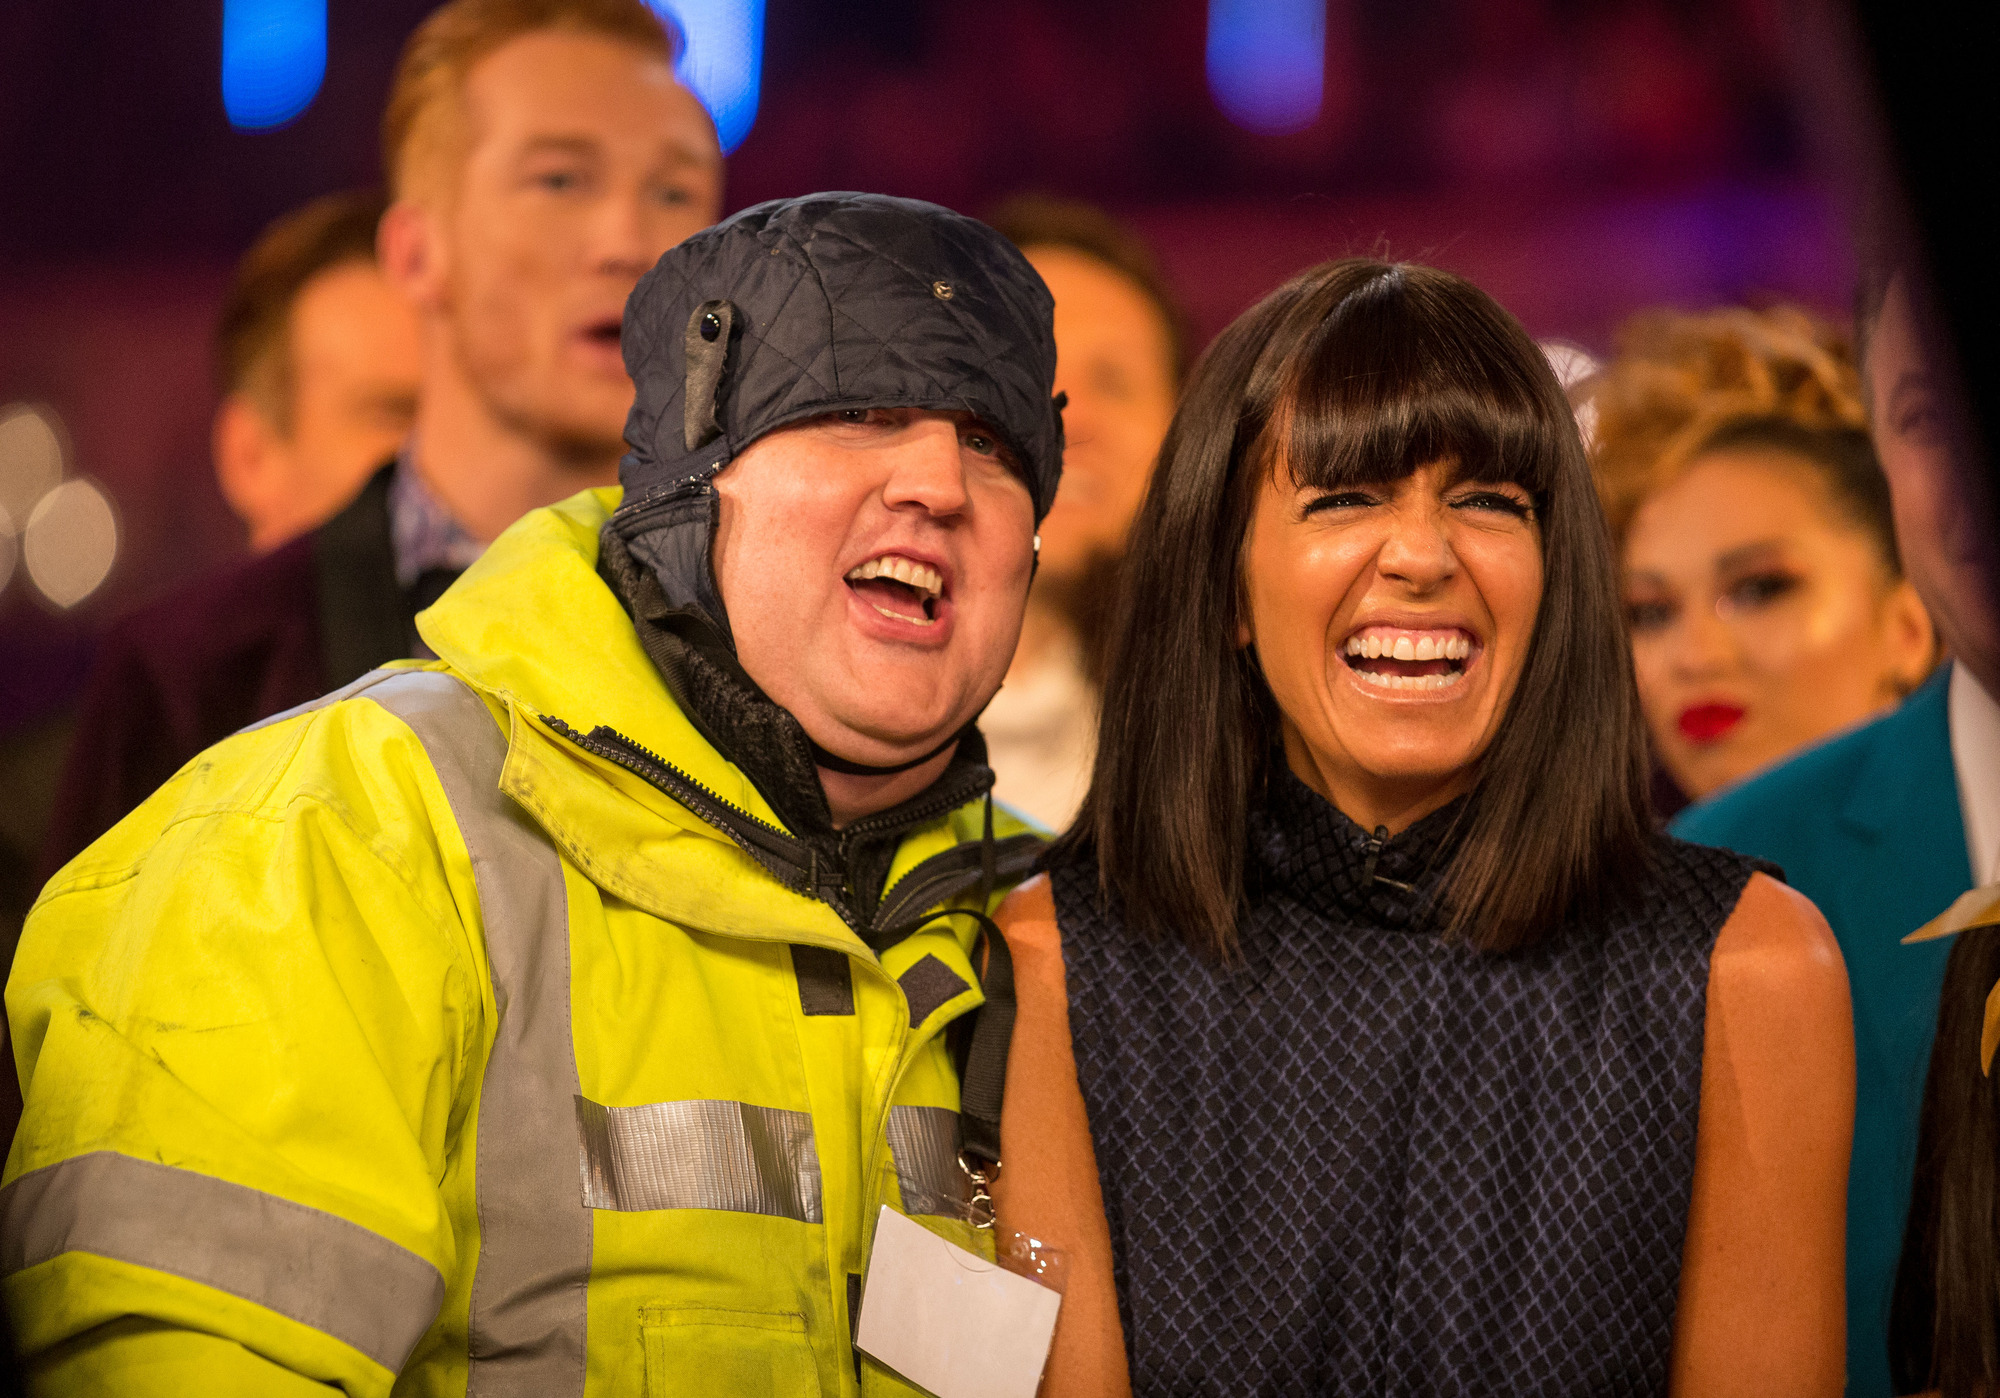 Peter Kay, Claudia Winkleman - (C) BBC - Photographer: Guy Levy